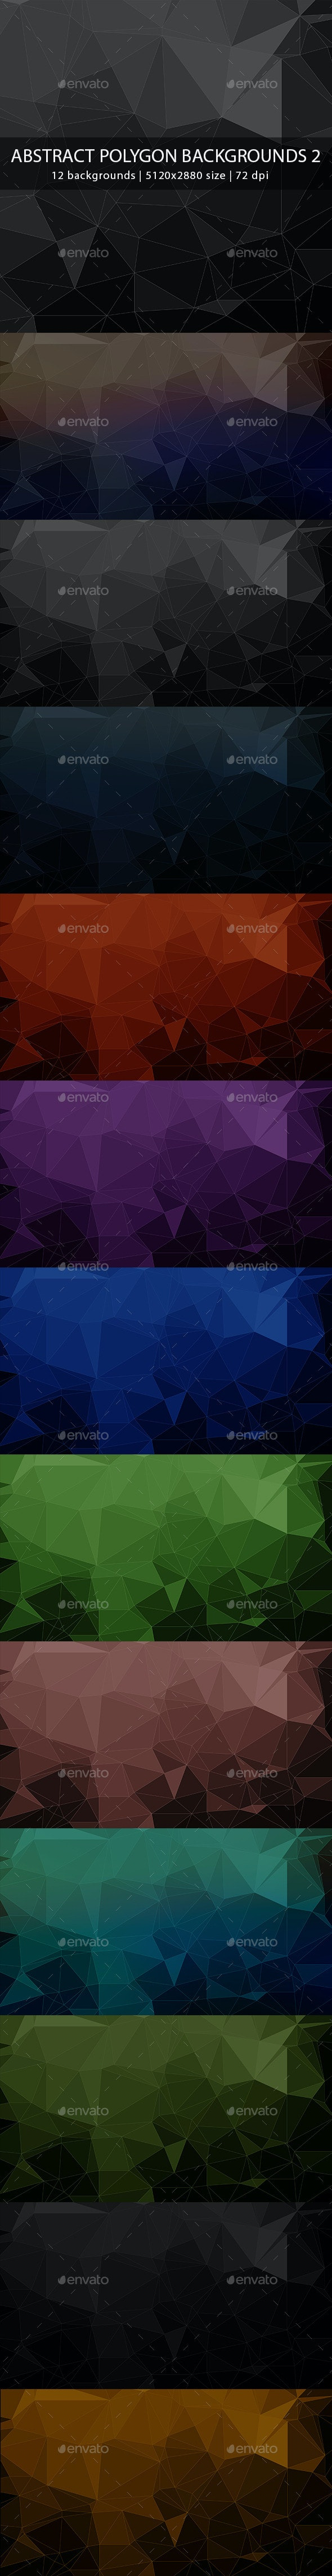 Abstract Polygon Backgrounds 2 - Abstract Backgrounds